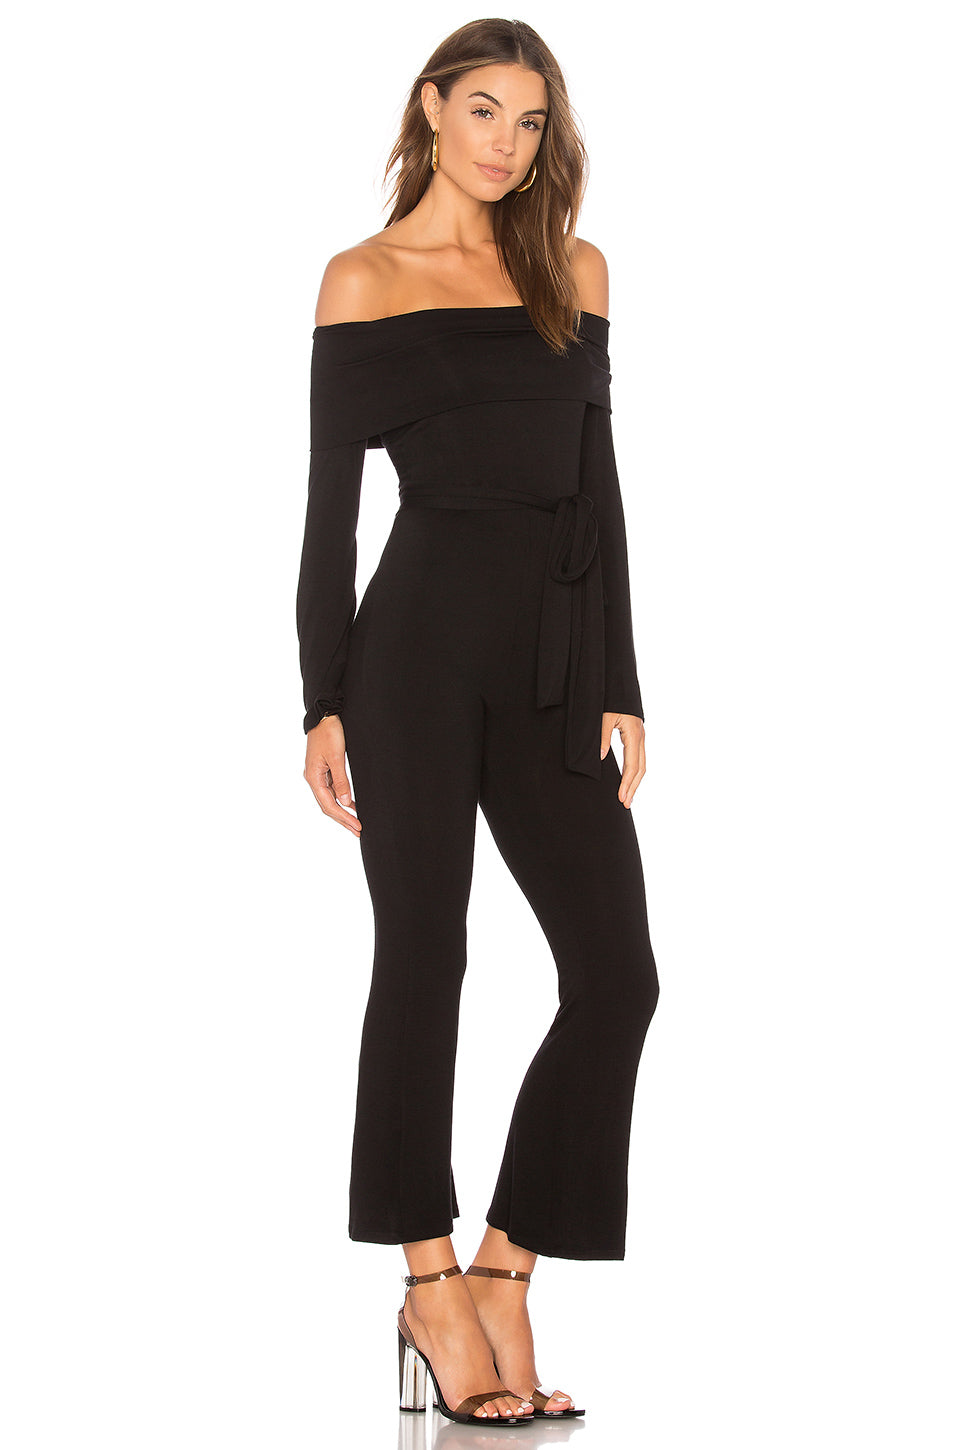 Clayton Malik Jumpsuit Black